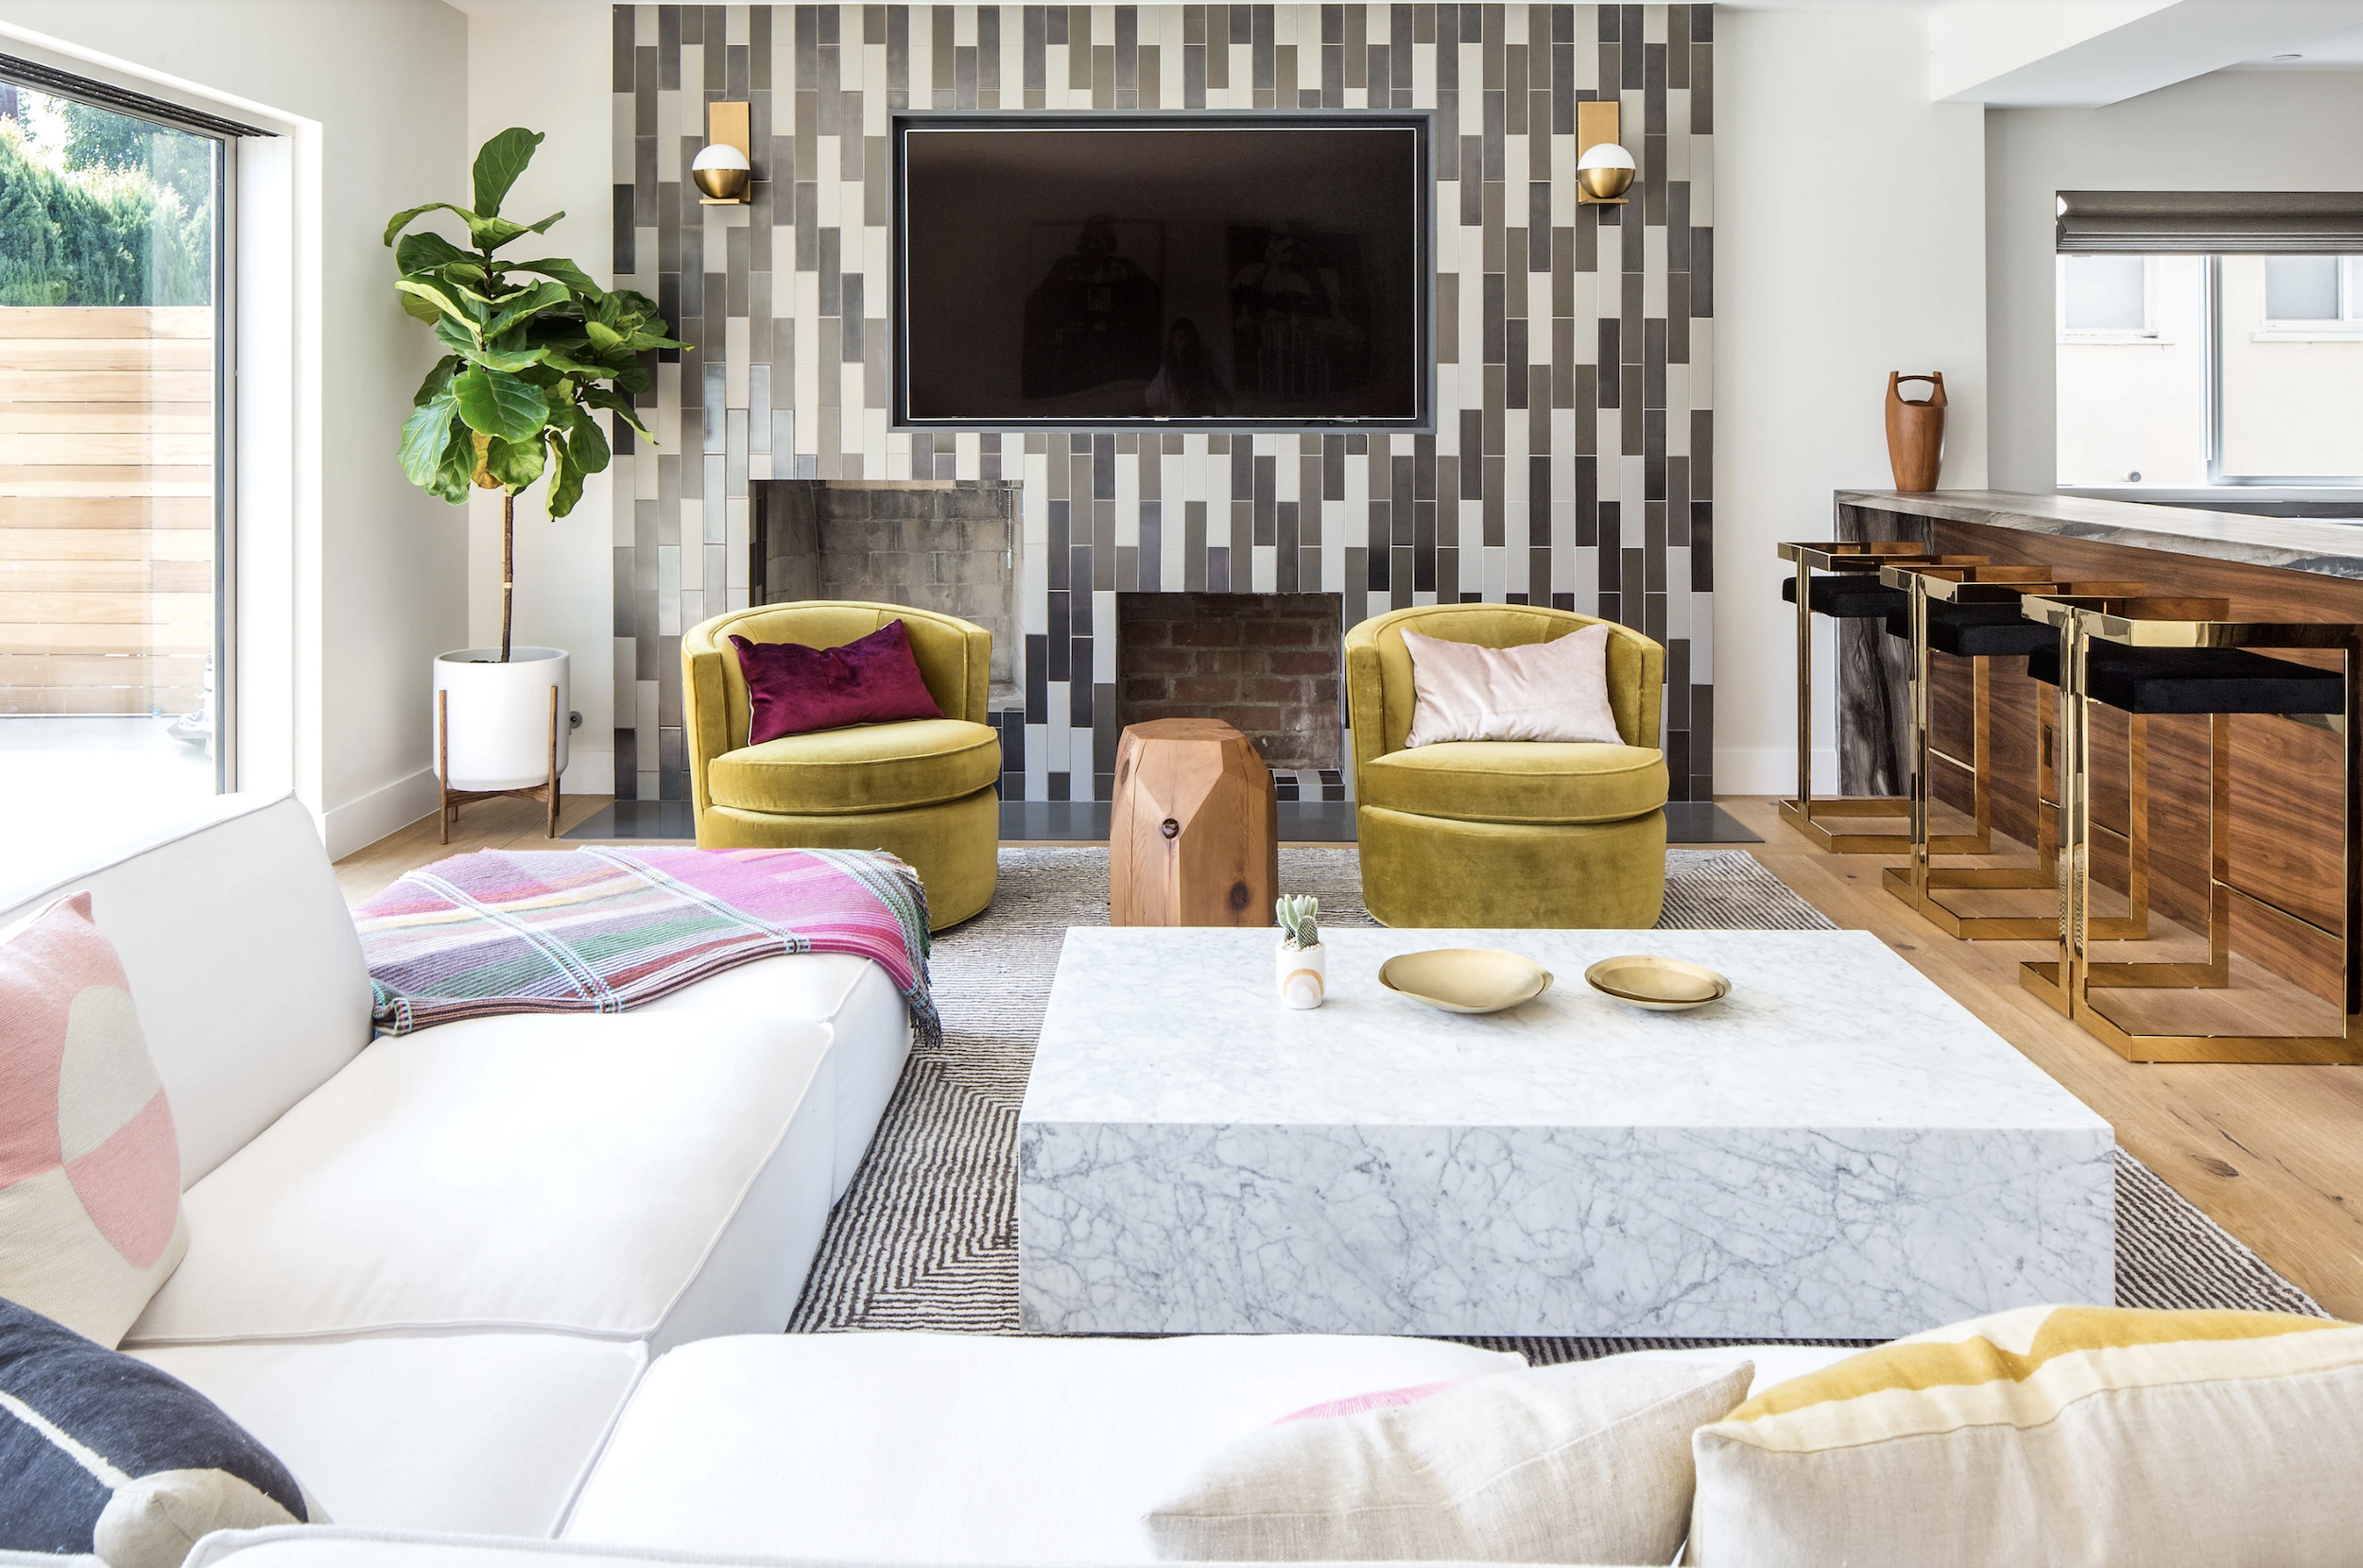 Courtesy of Veneer Designs & 30 Family Room Design Ideas - Decorating Tips for Family Rooms